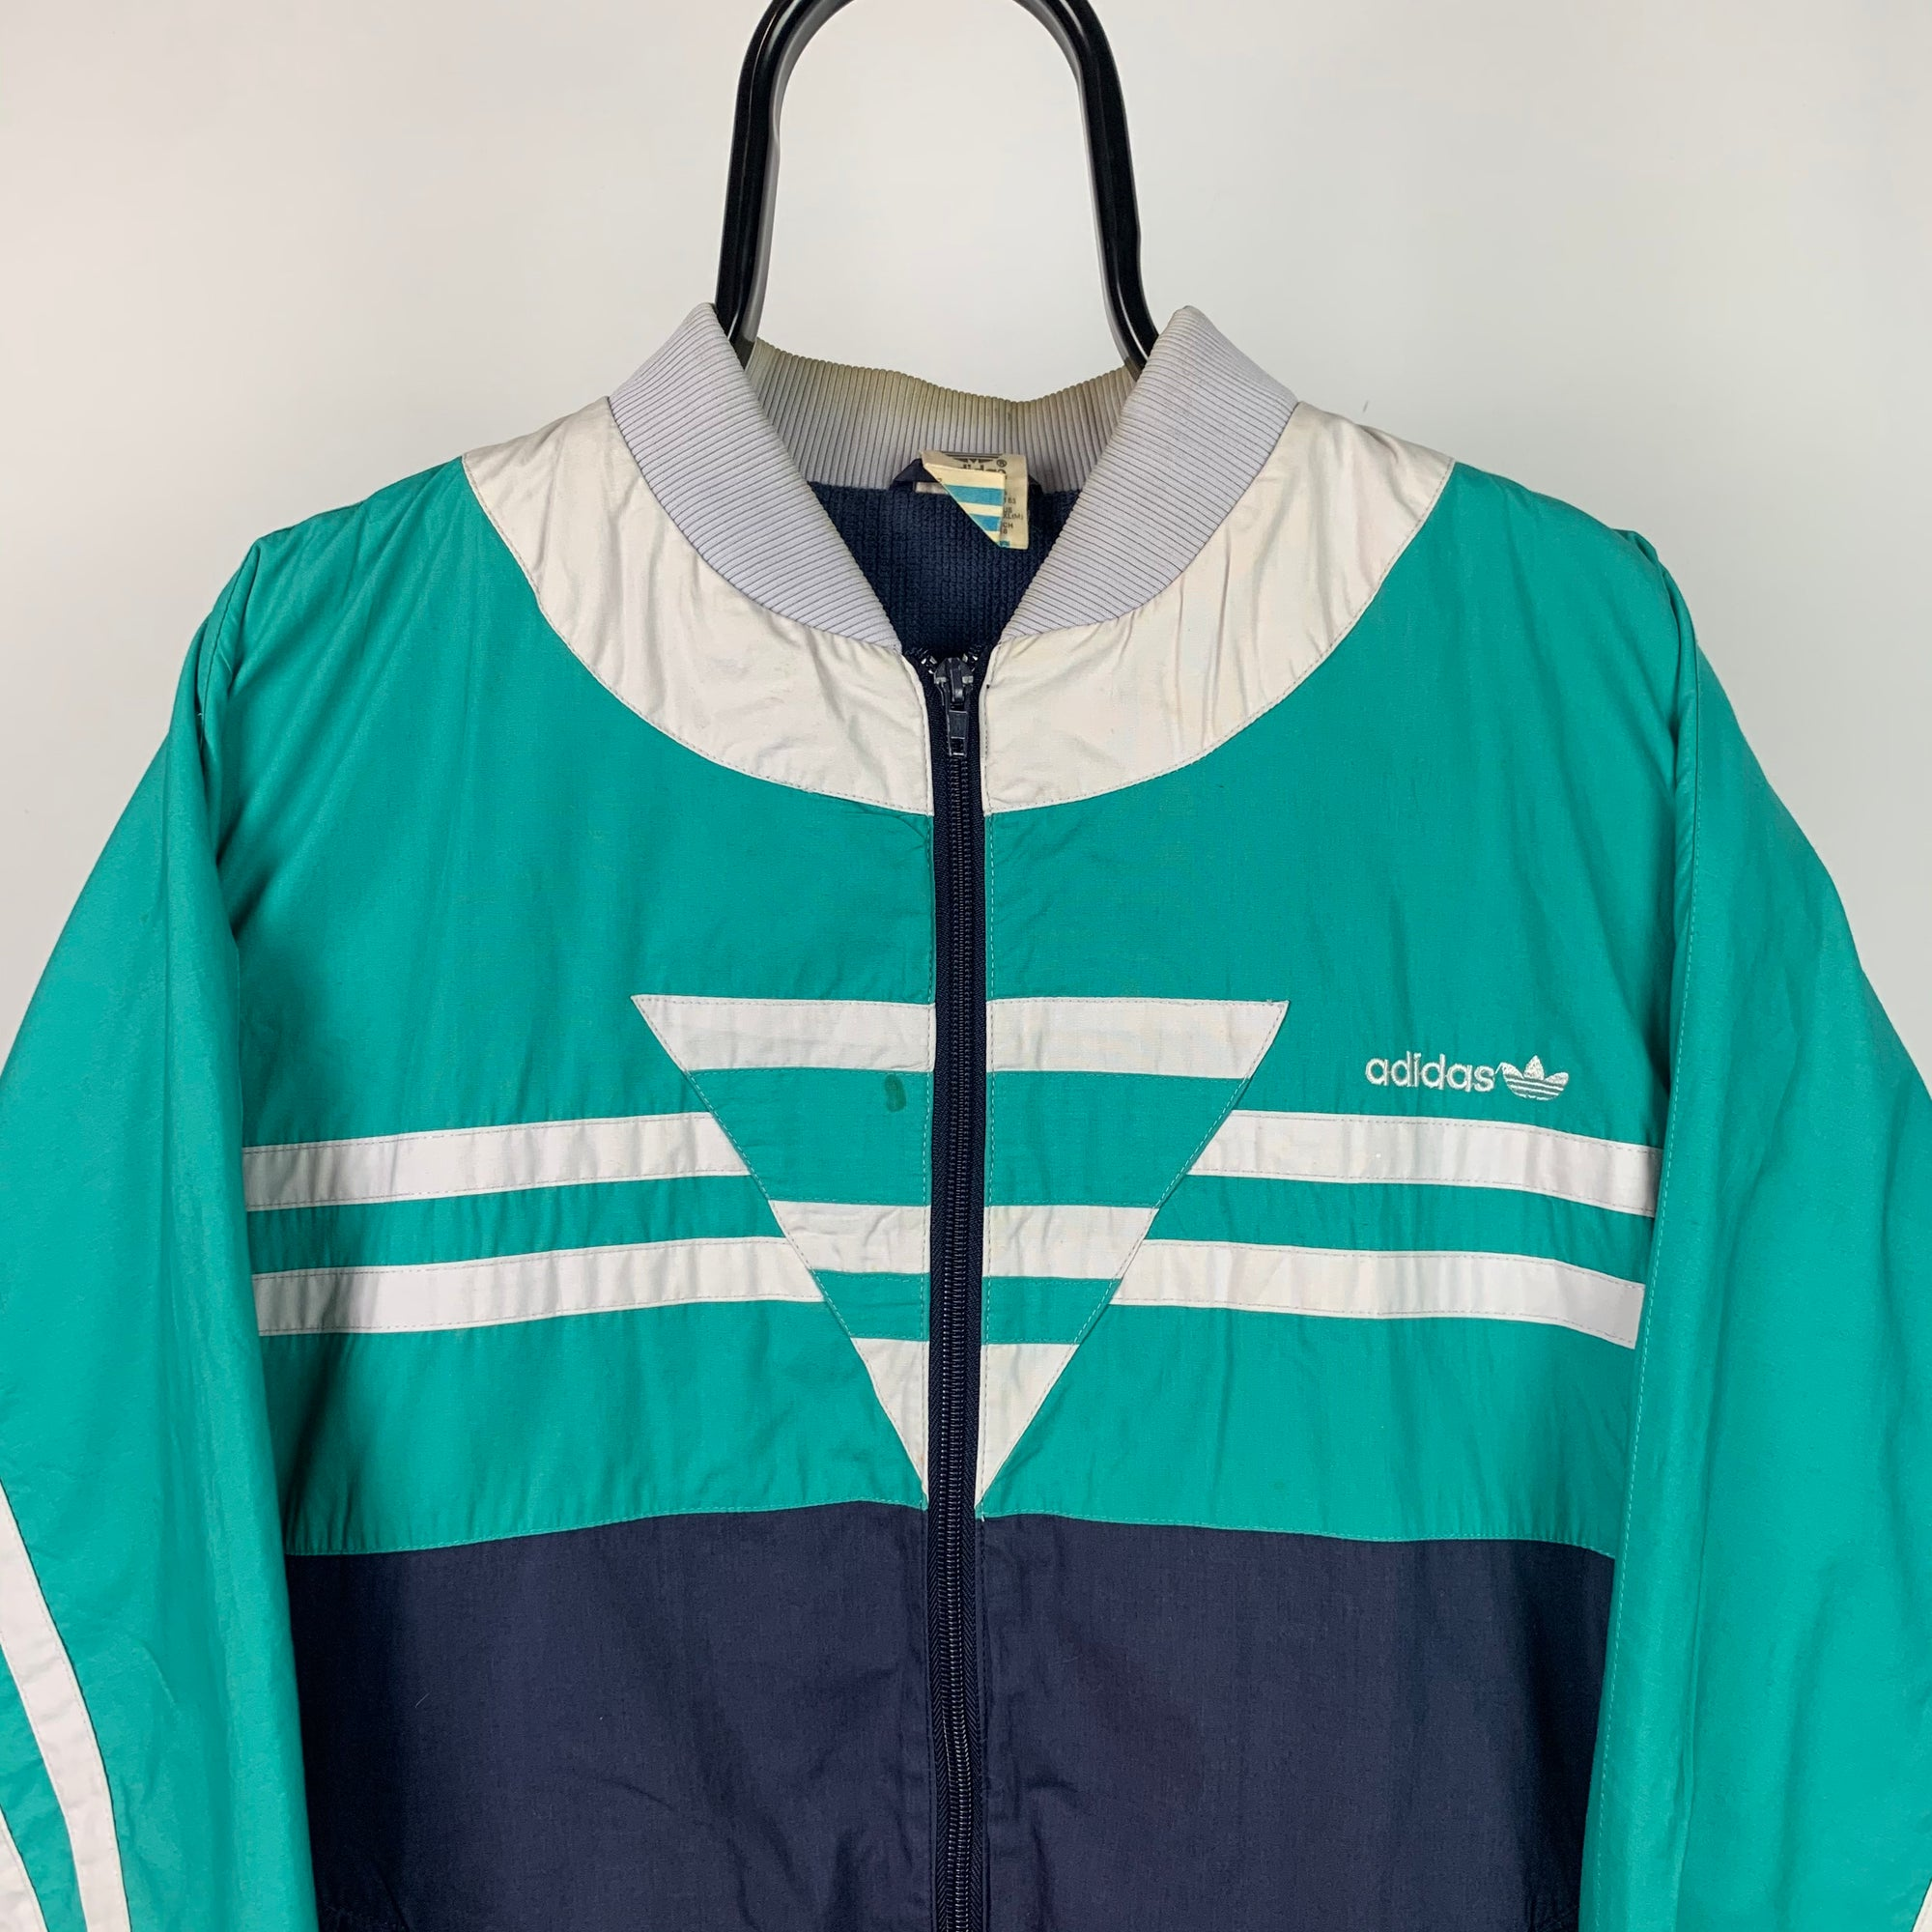 Vintage 80s Adidas Track Jacket in Green/White/Navy - Men's Large/Women's XL